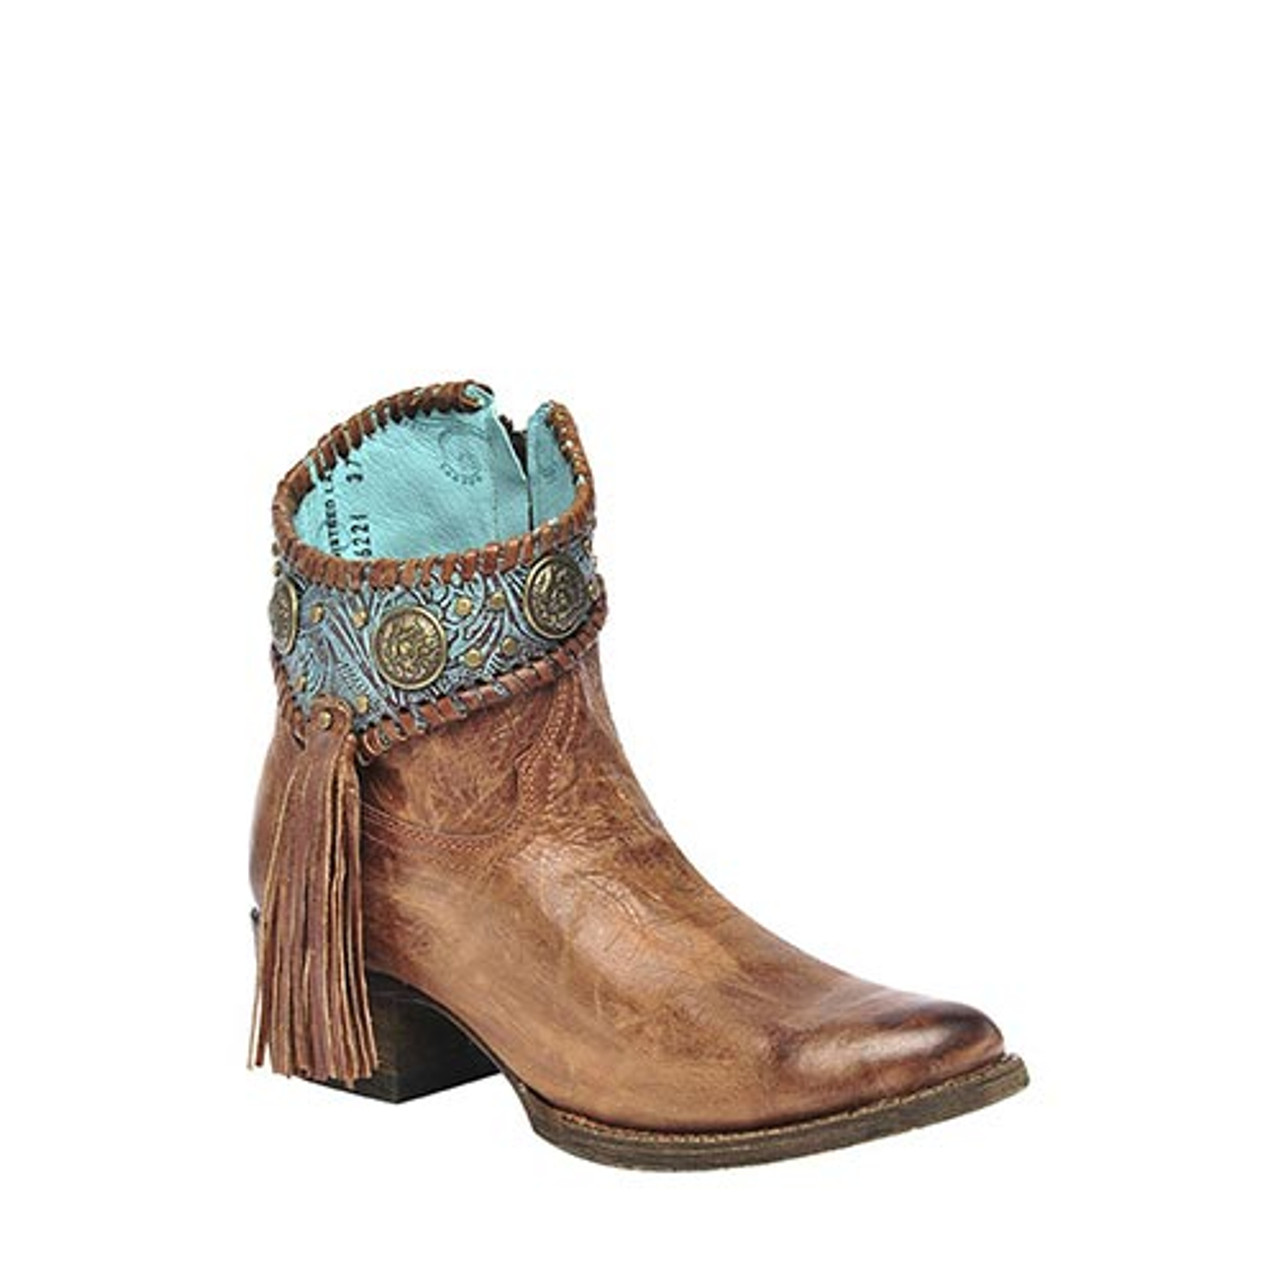 corral women's boots turquoise